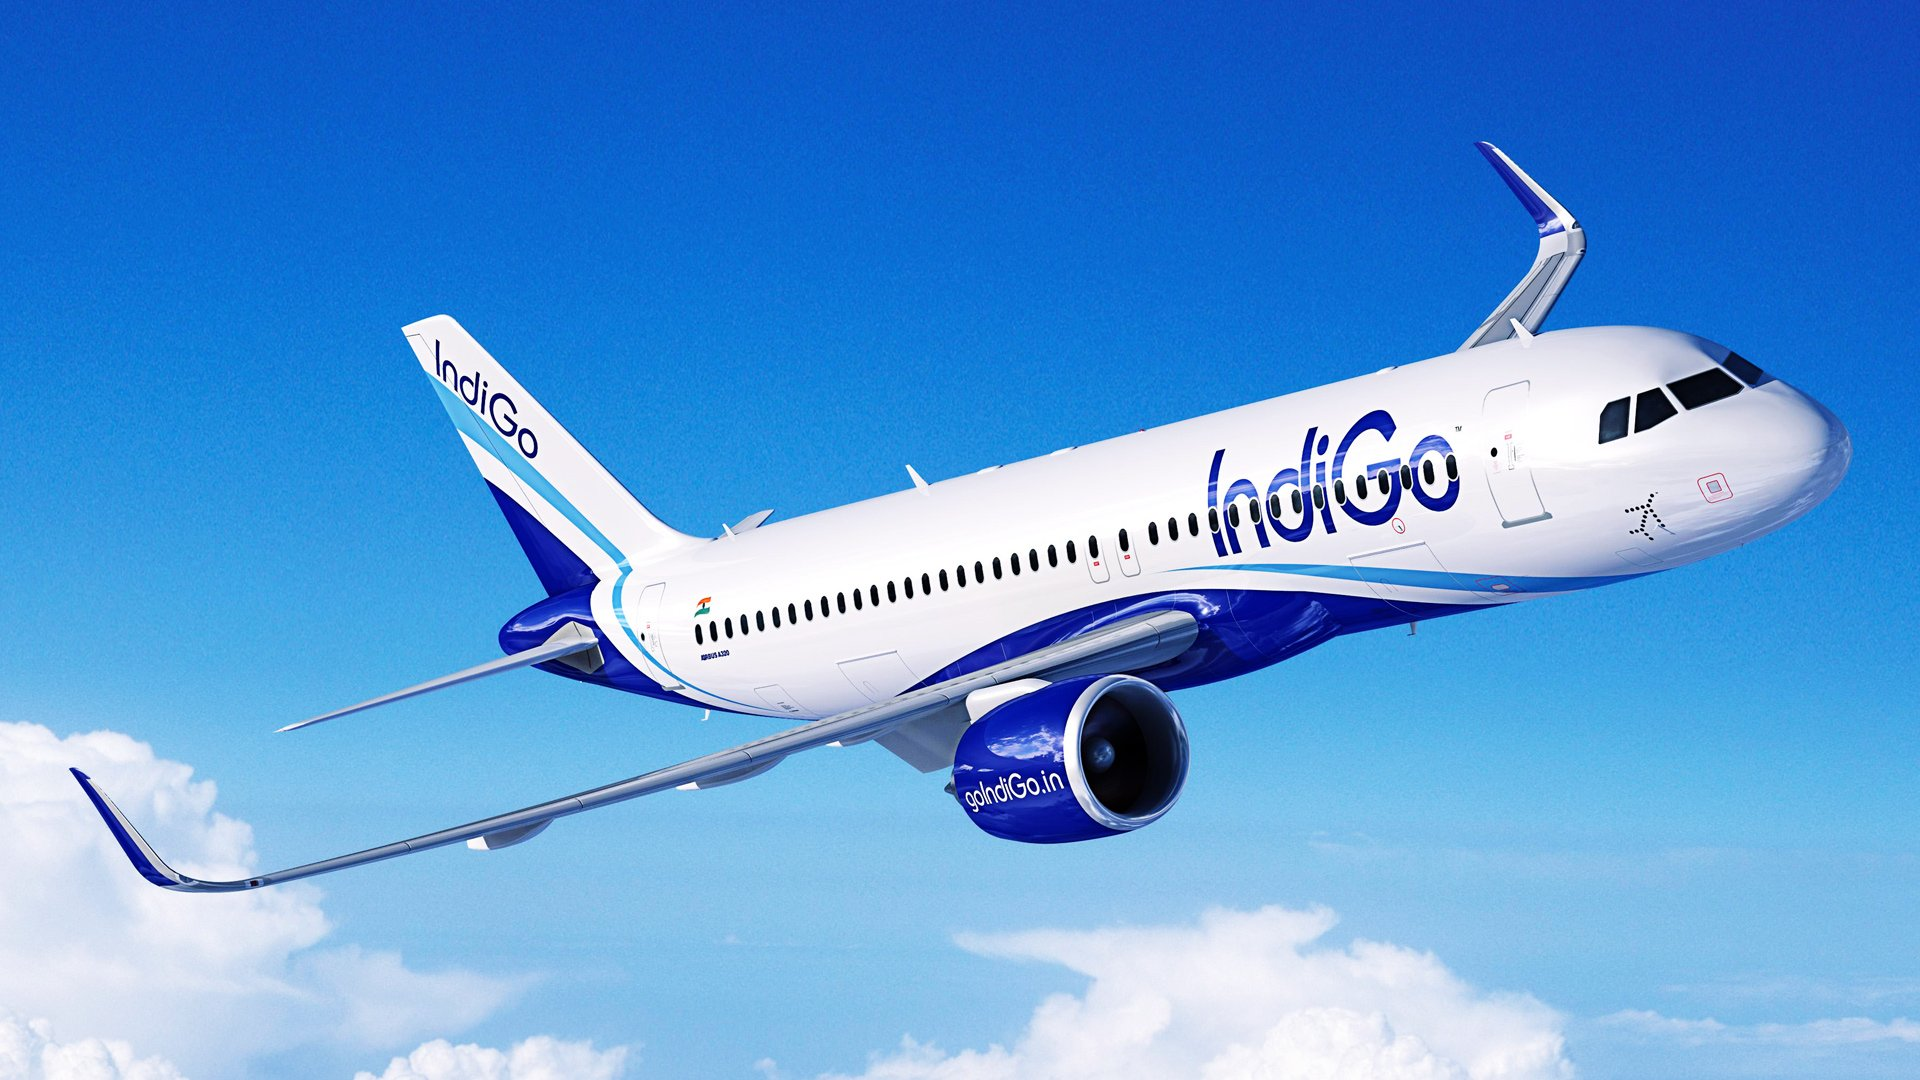 indigo two direct flight start from jollygrant to lucknow and bangalore